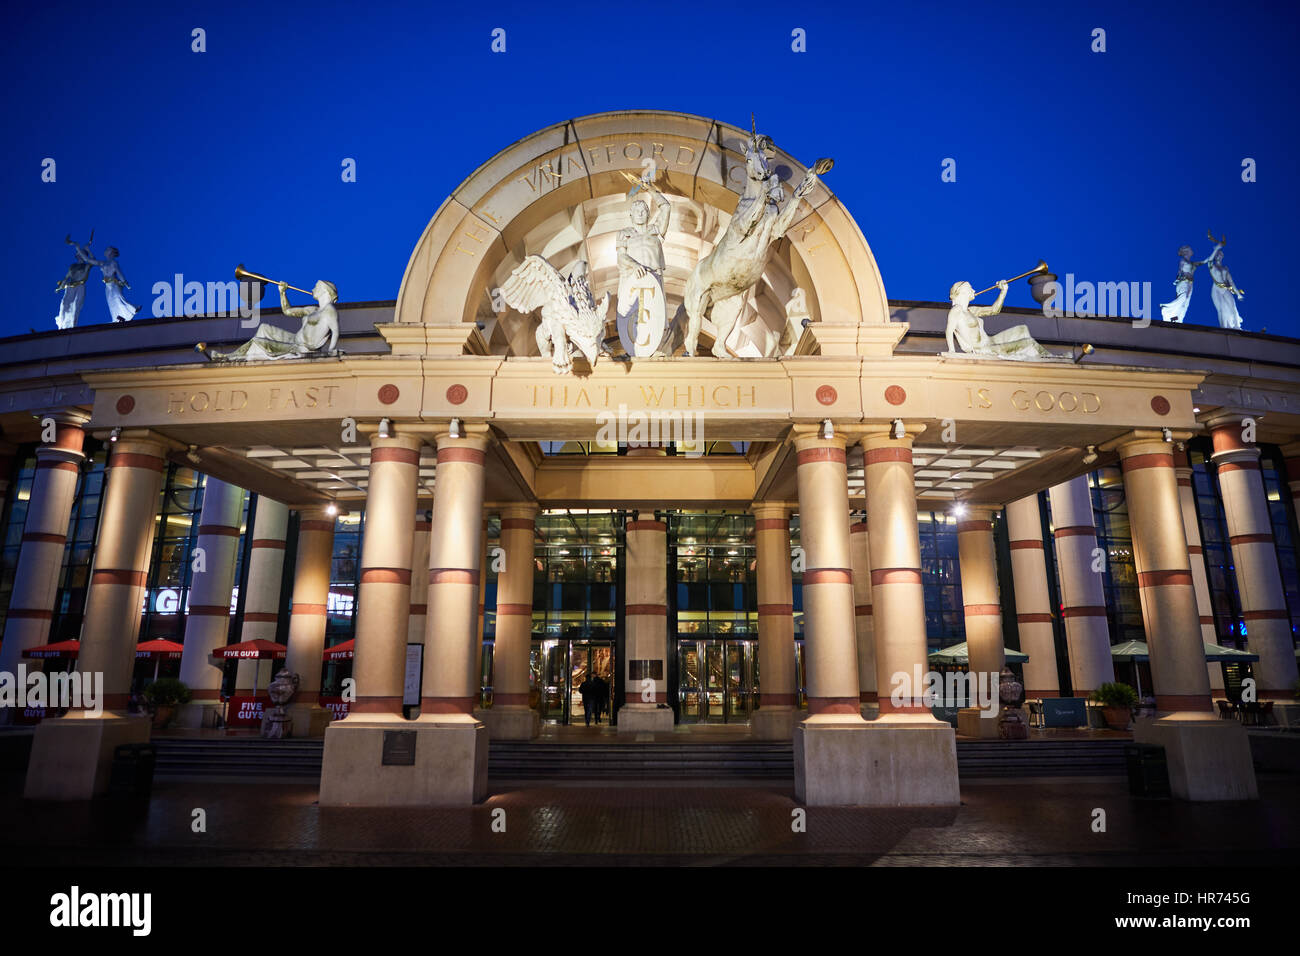 Exterior grand entrance for  Intu Great Hall Orient, Trafford Centre at shopping mall centre complex Dunplington, - Stock Image